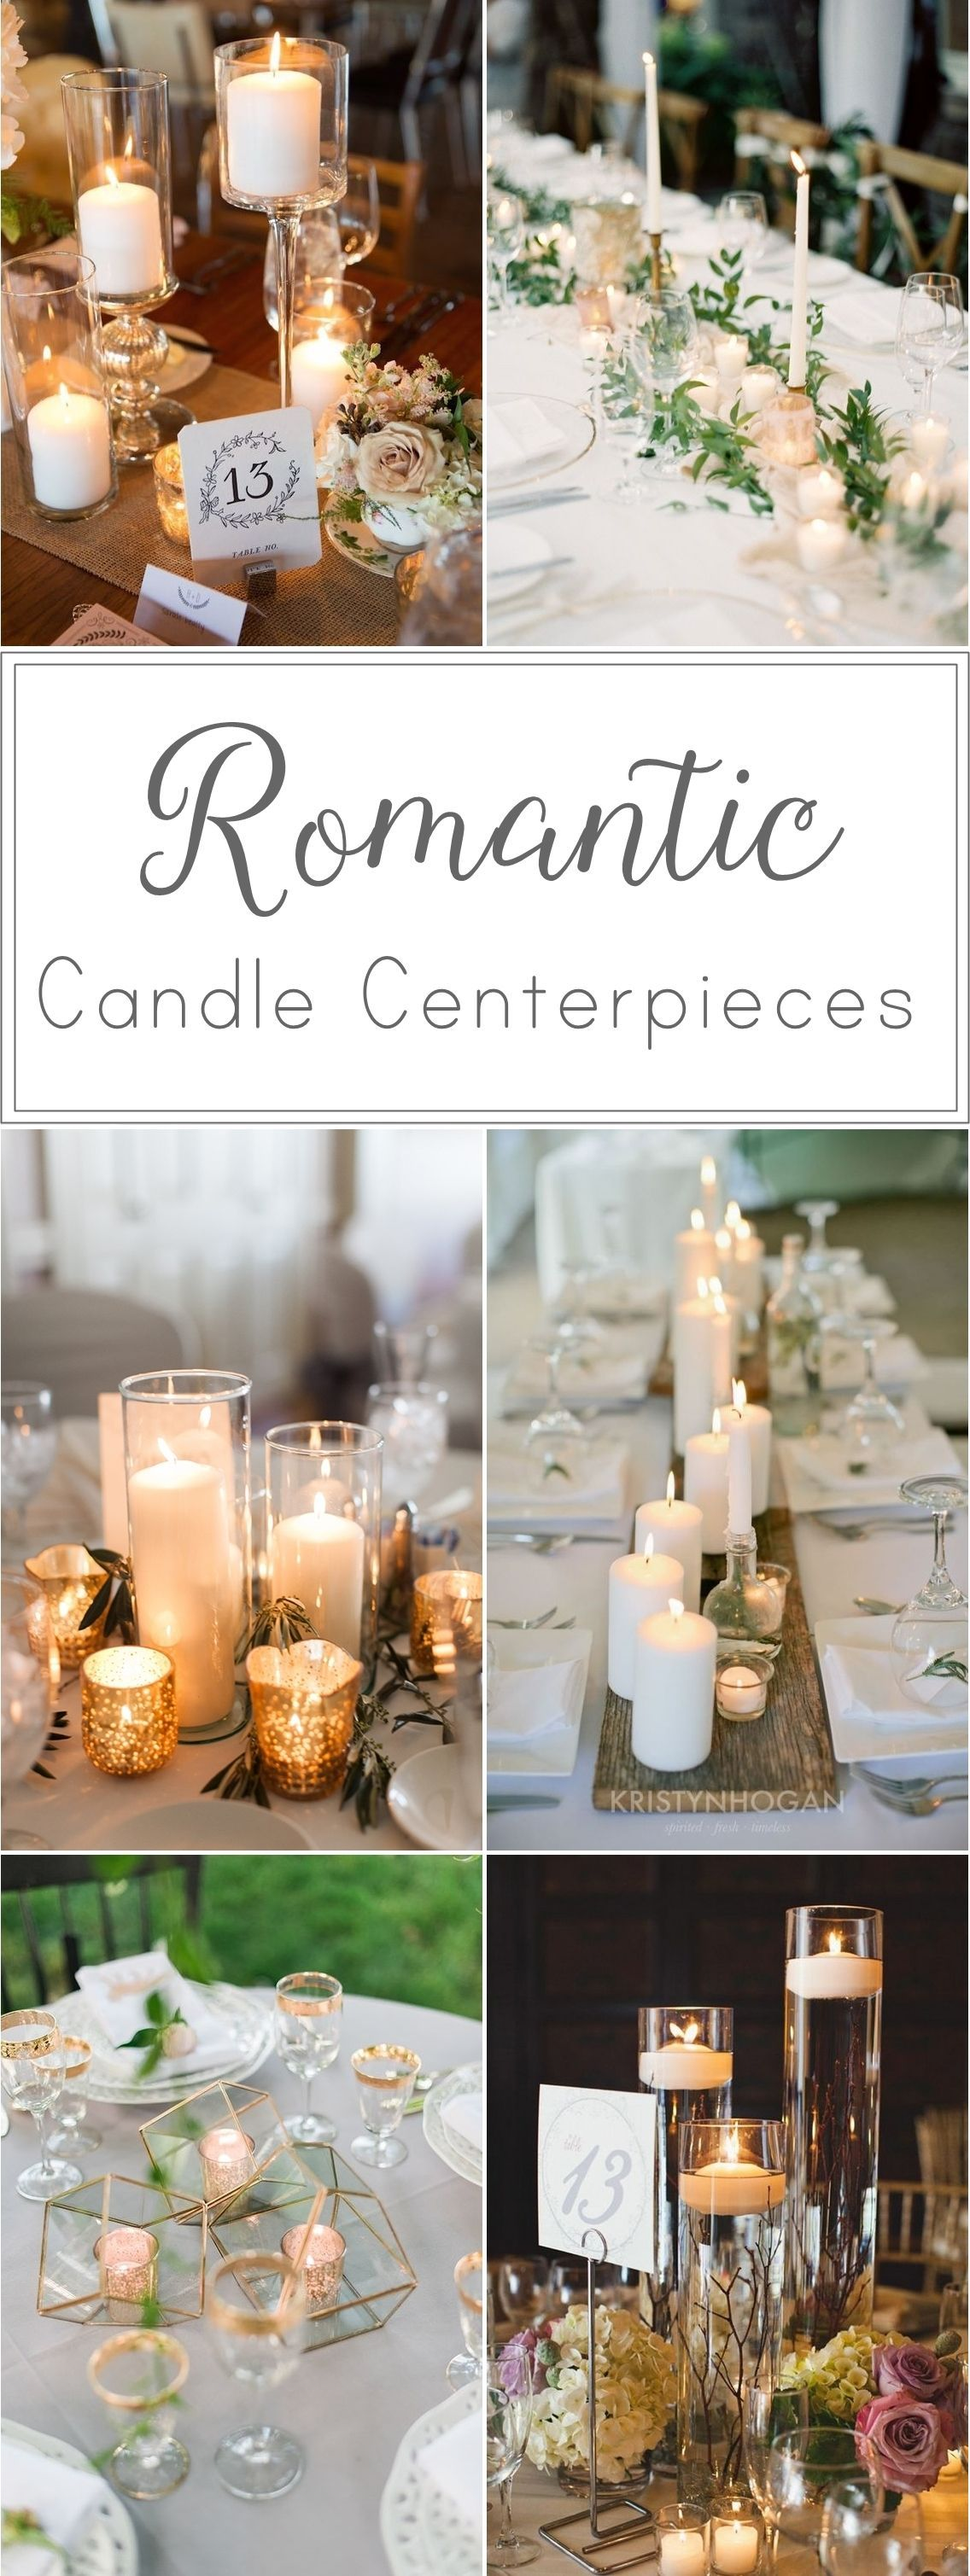 Candle centerpieces add that perfect ambiance to a wedding reception ...